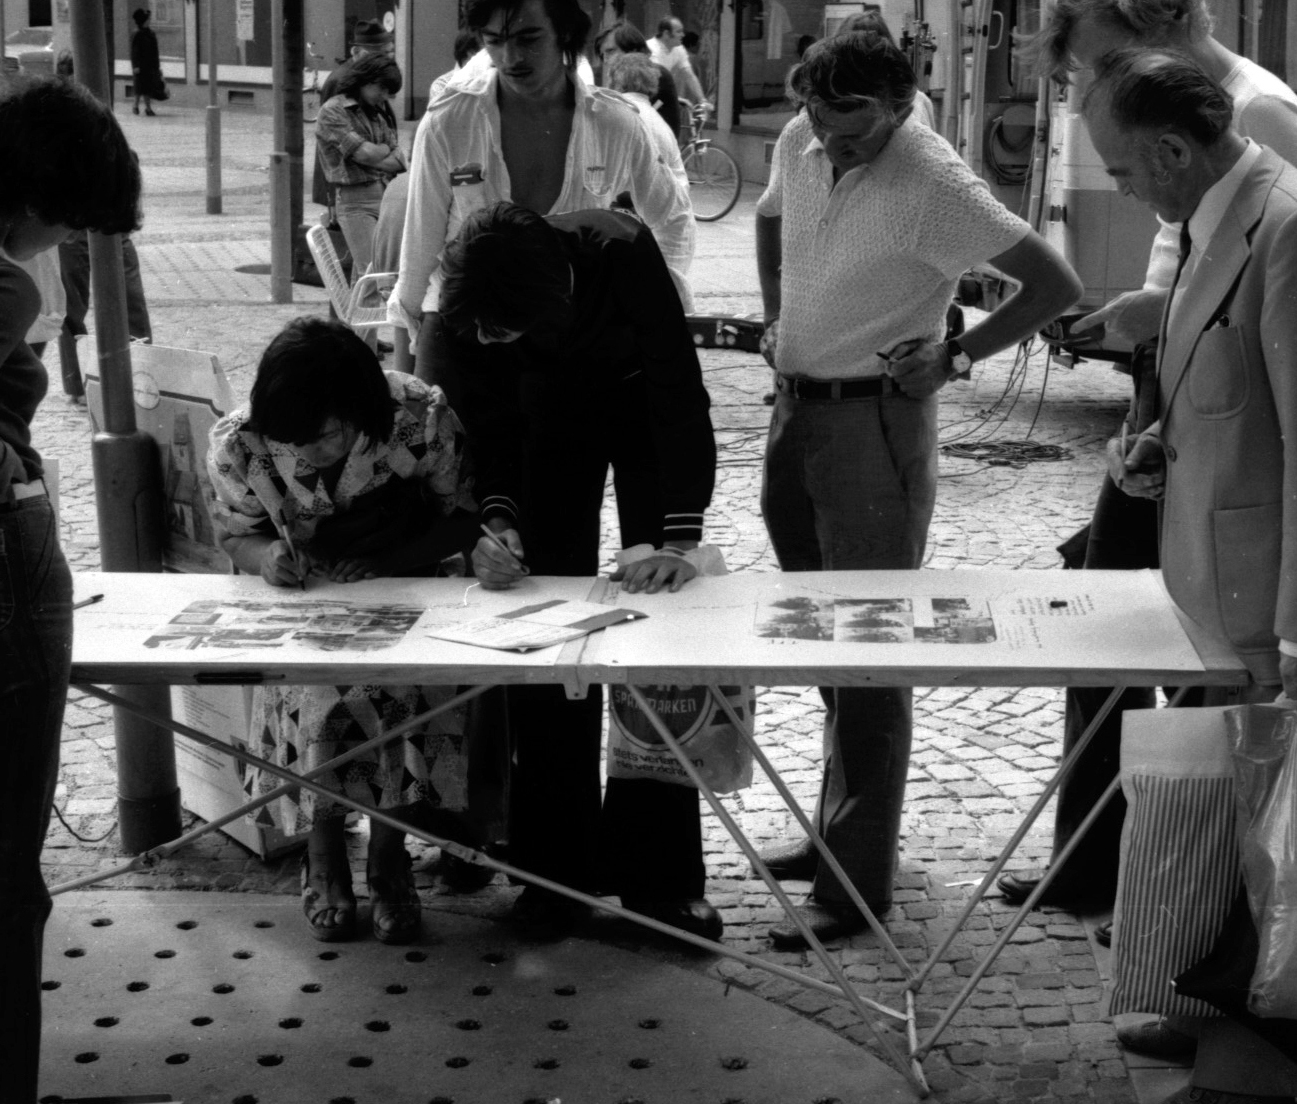 A table with graphic material standing in the street. 2 persons writing on some sheets. Other persons standing around and watching them.